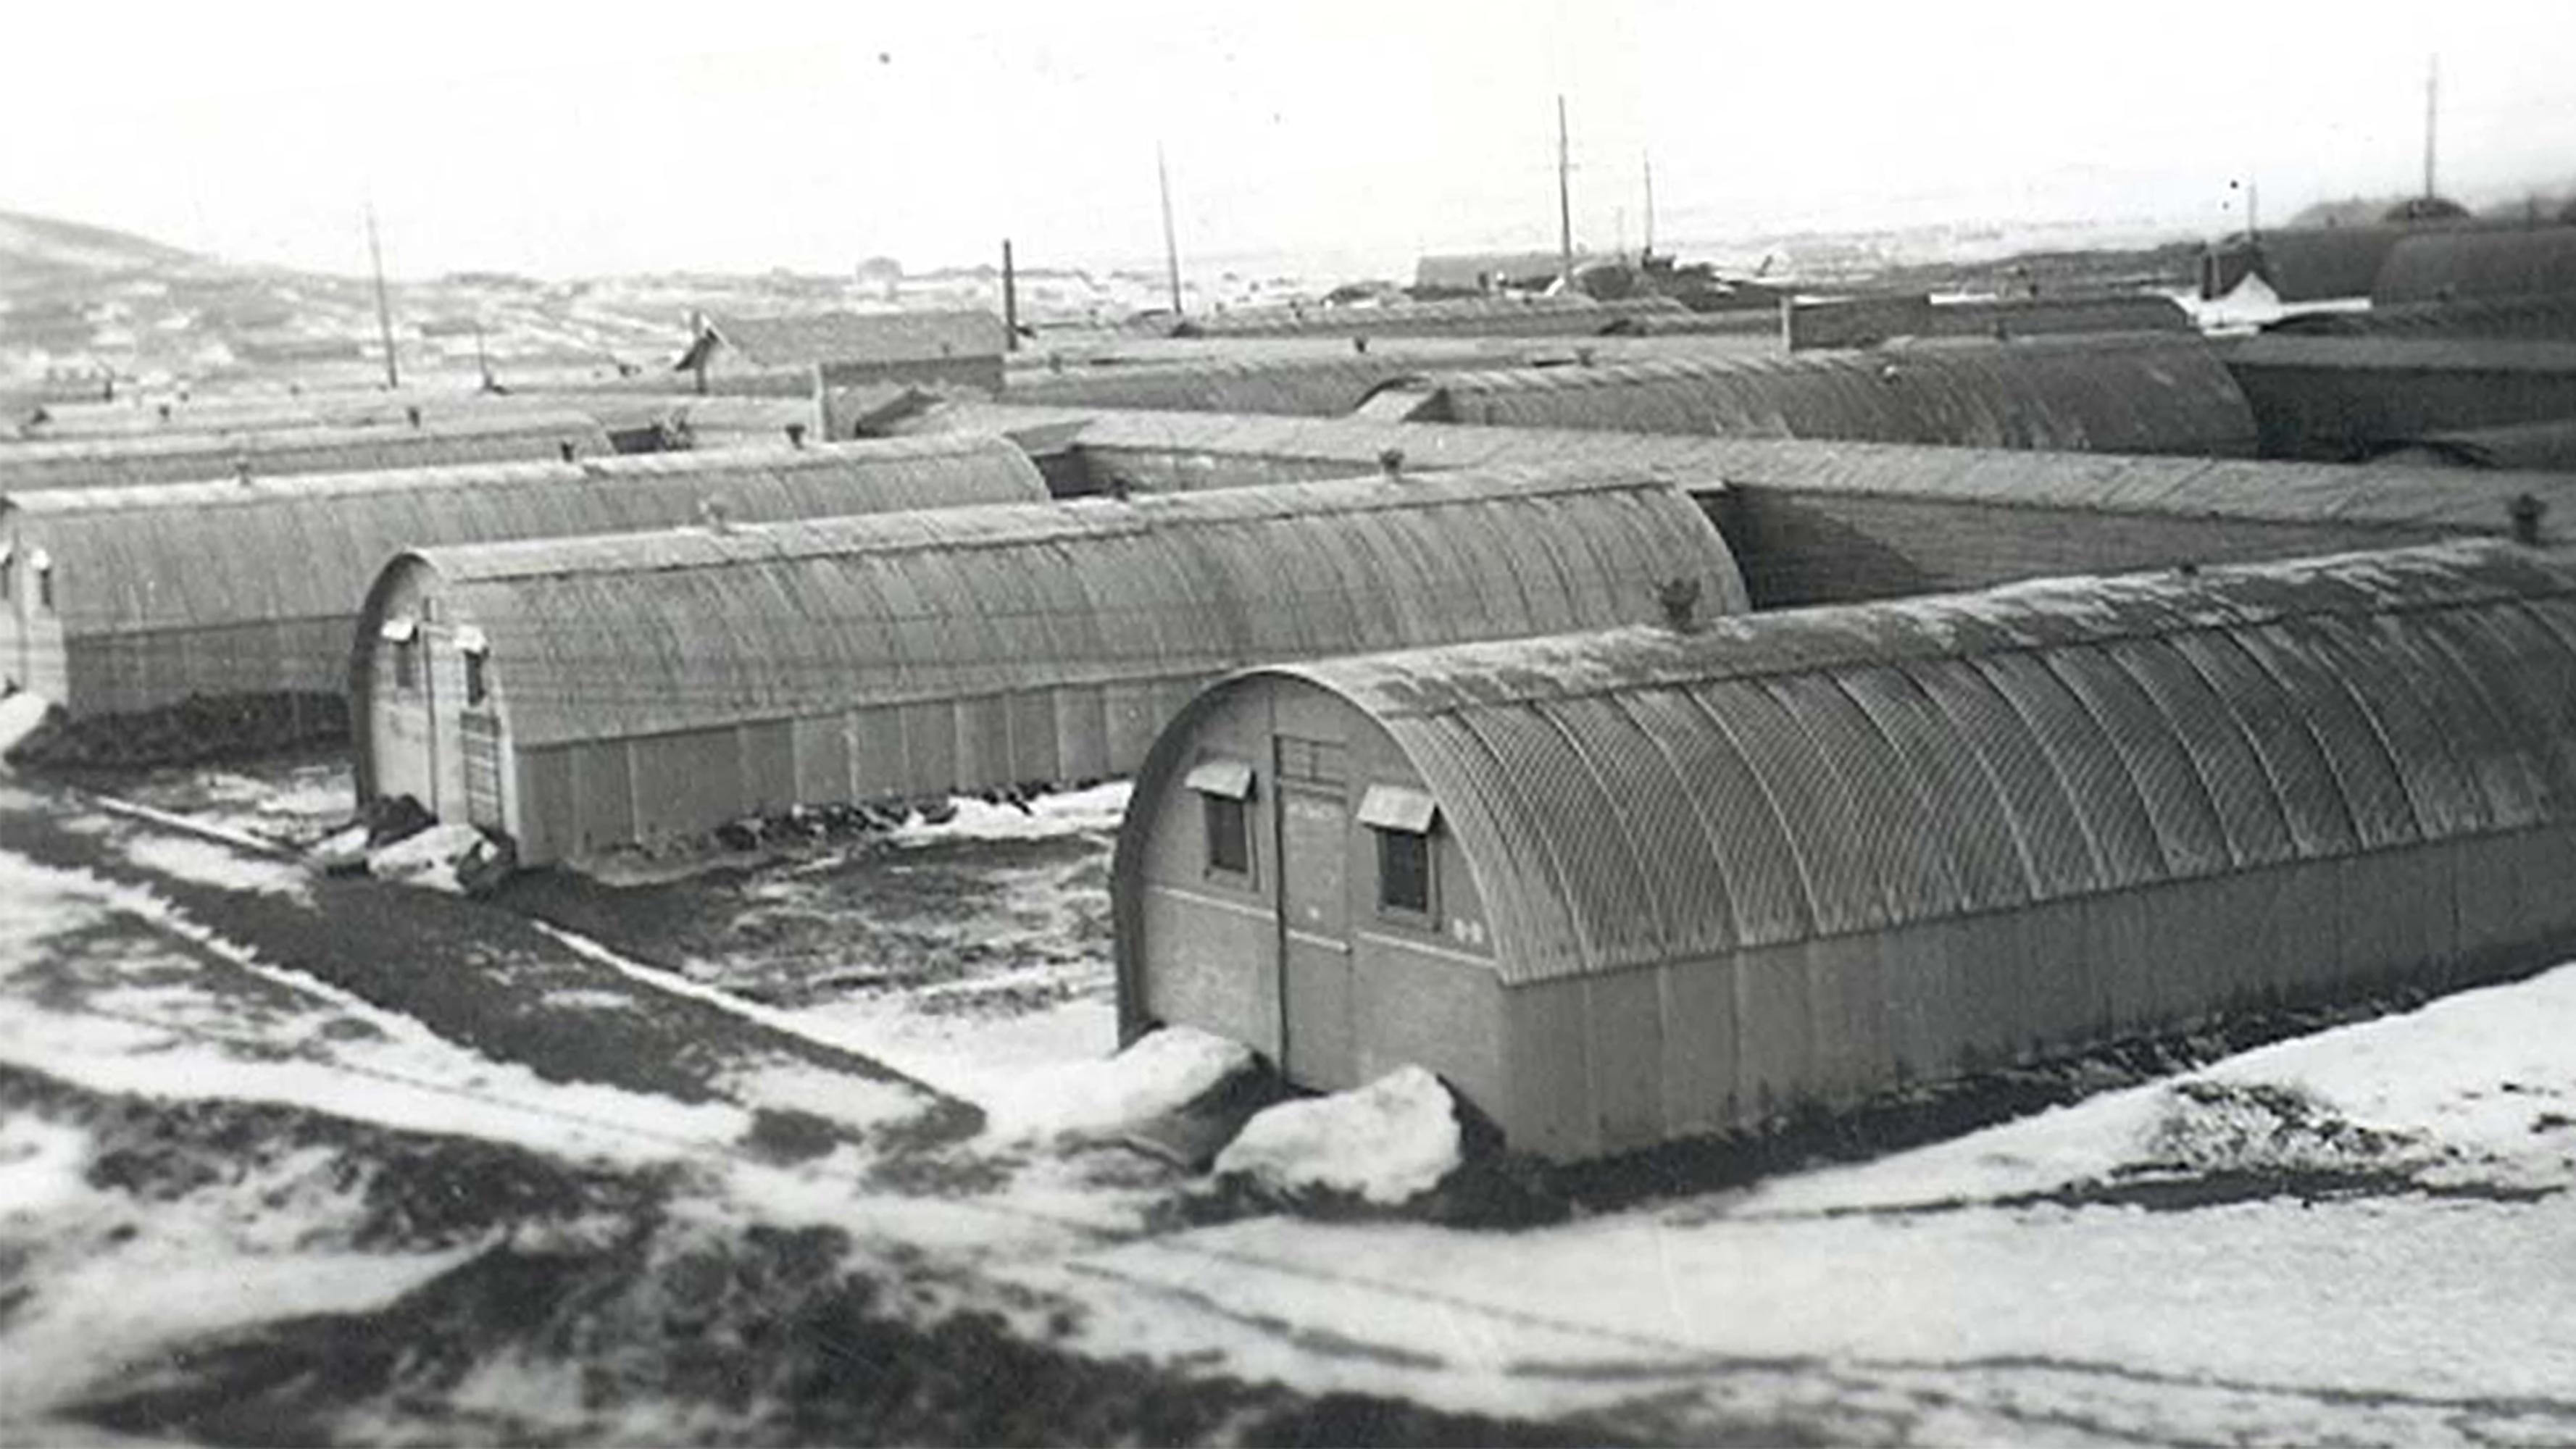 Historic photo of rows of long Quonset huts.